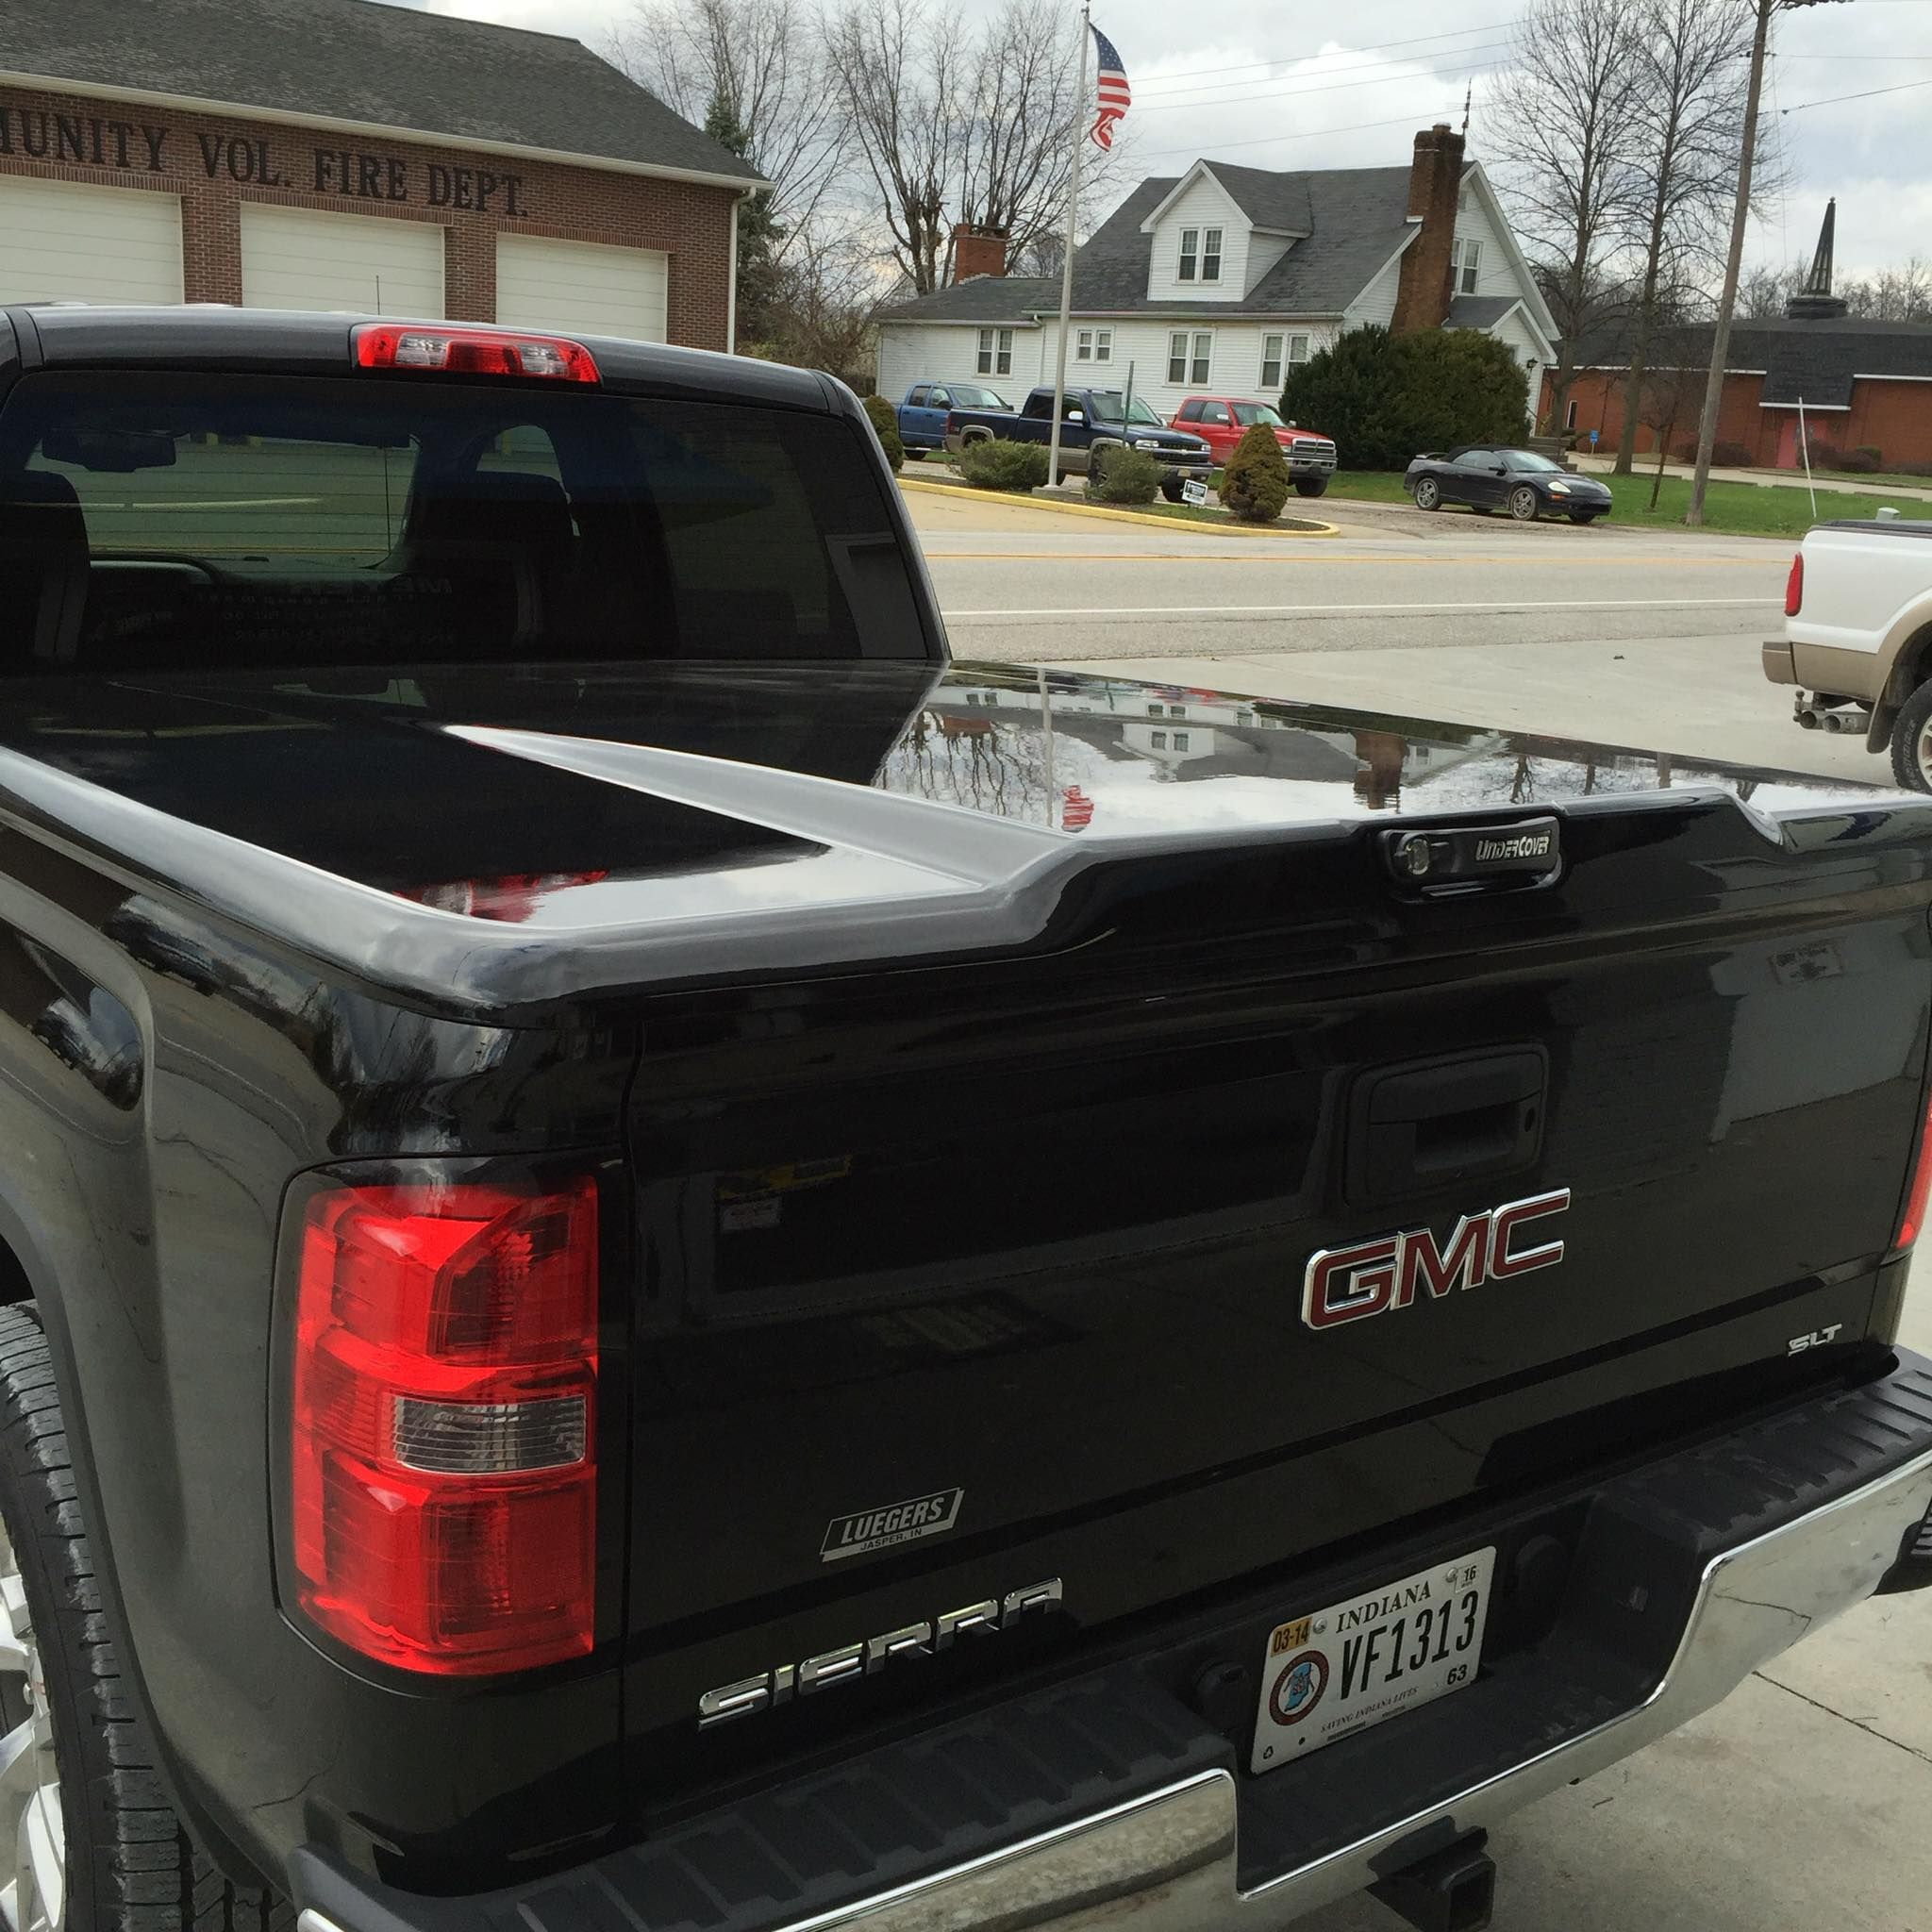 The Undercover Tonneau Covers Elite Lx Series Truck Bed Cover Is